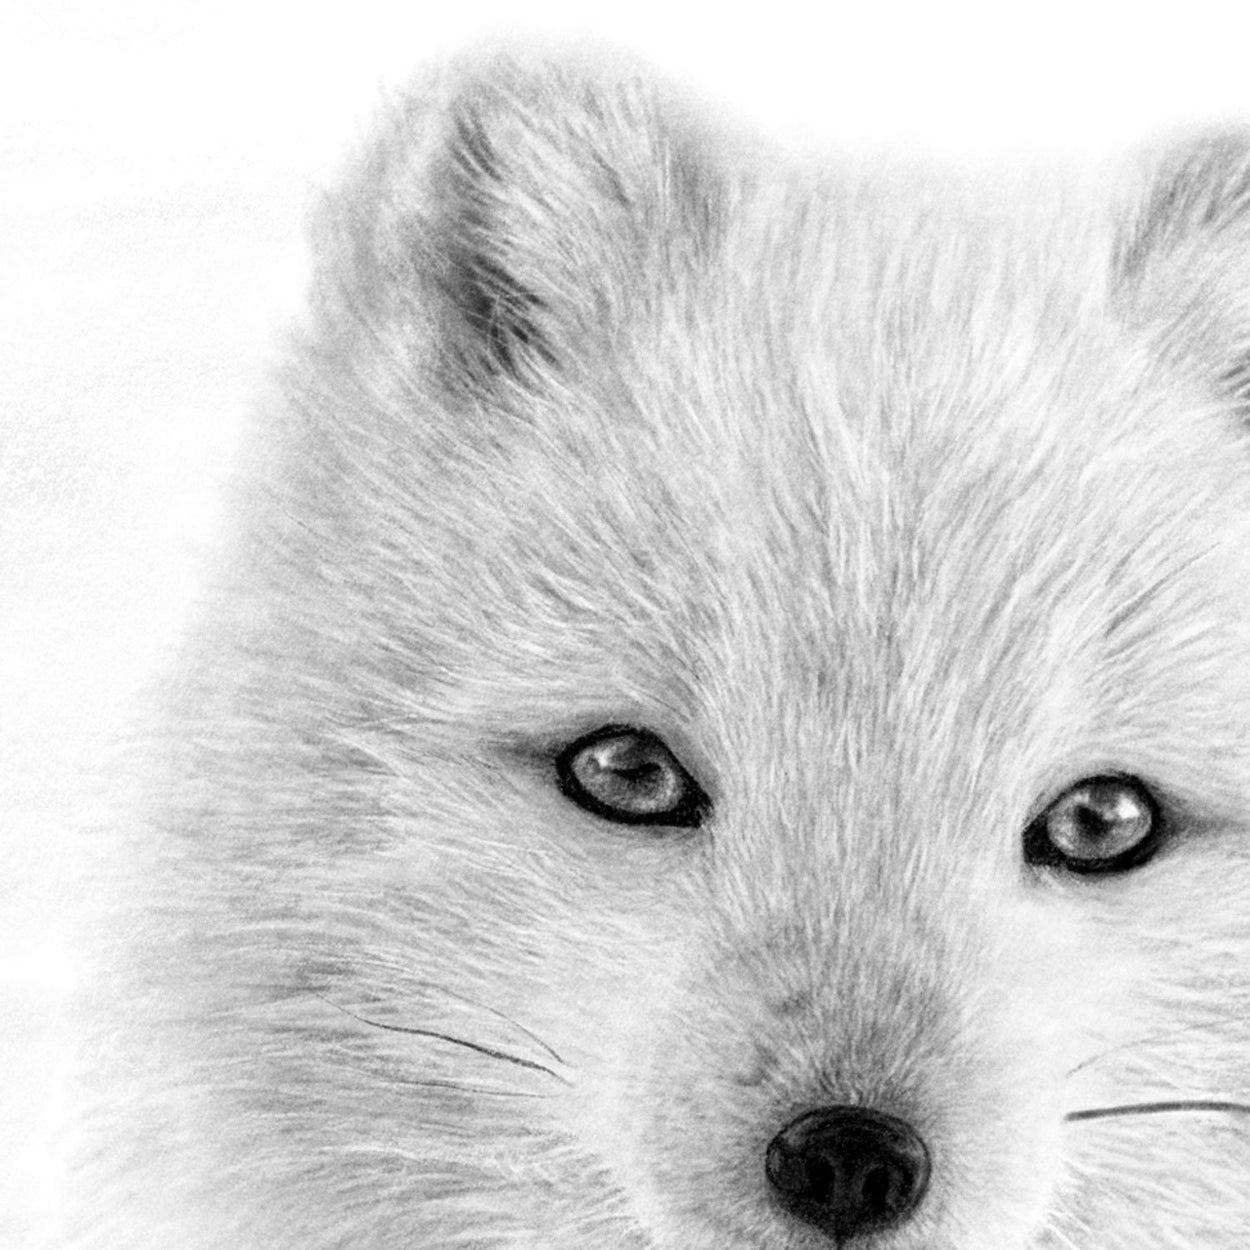 Arctic Fox Digital Drawing Close-up - The Thriving Wild